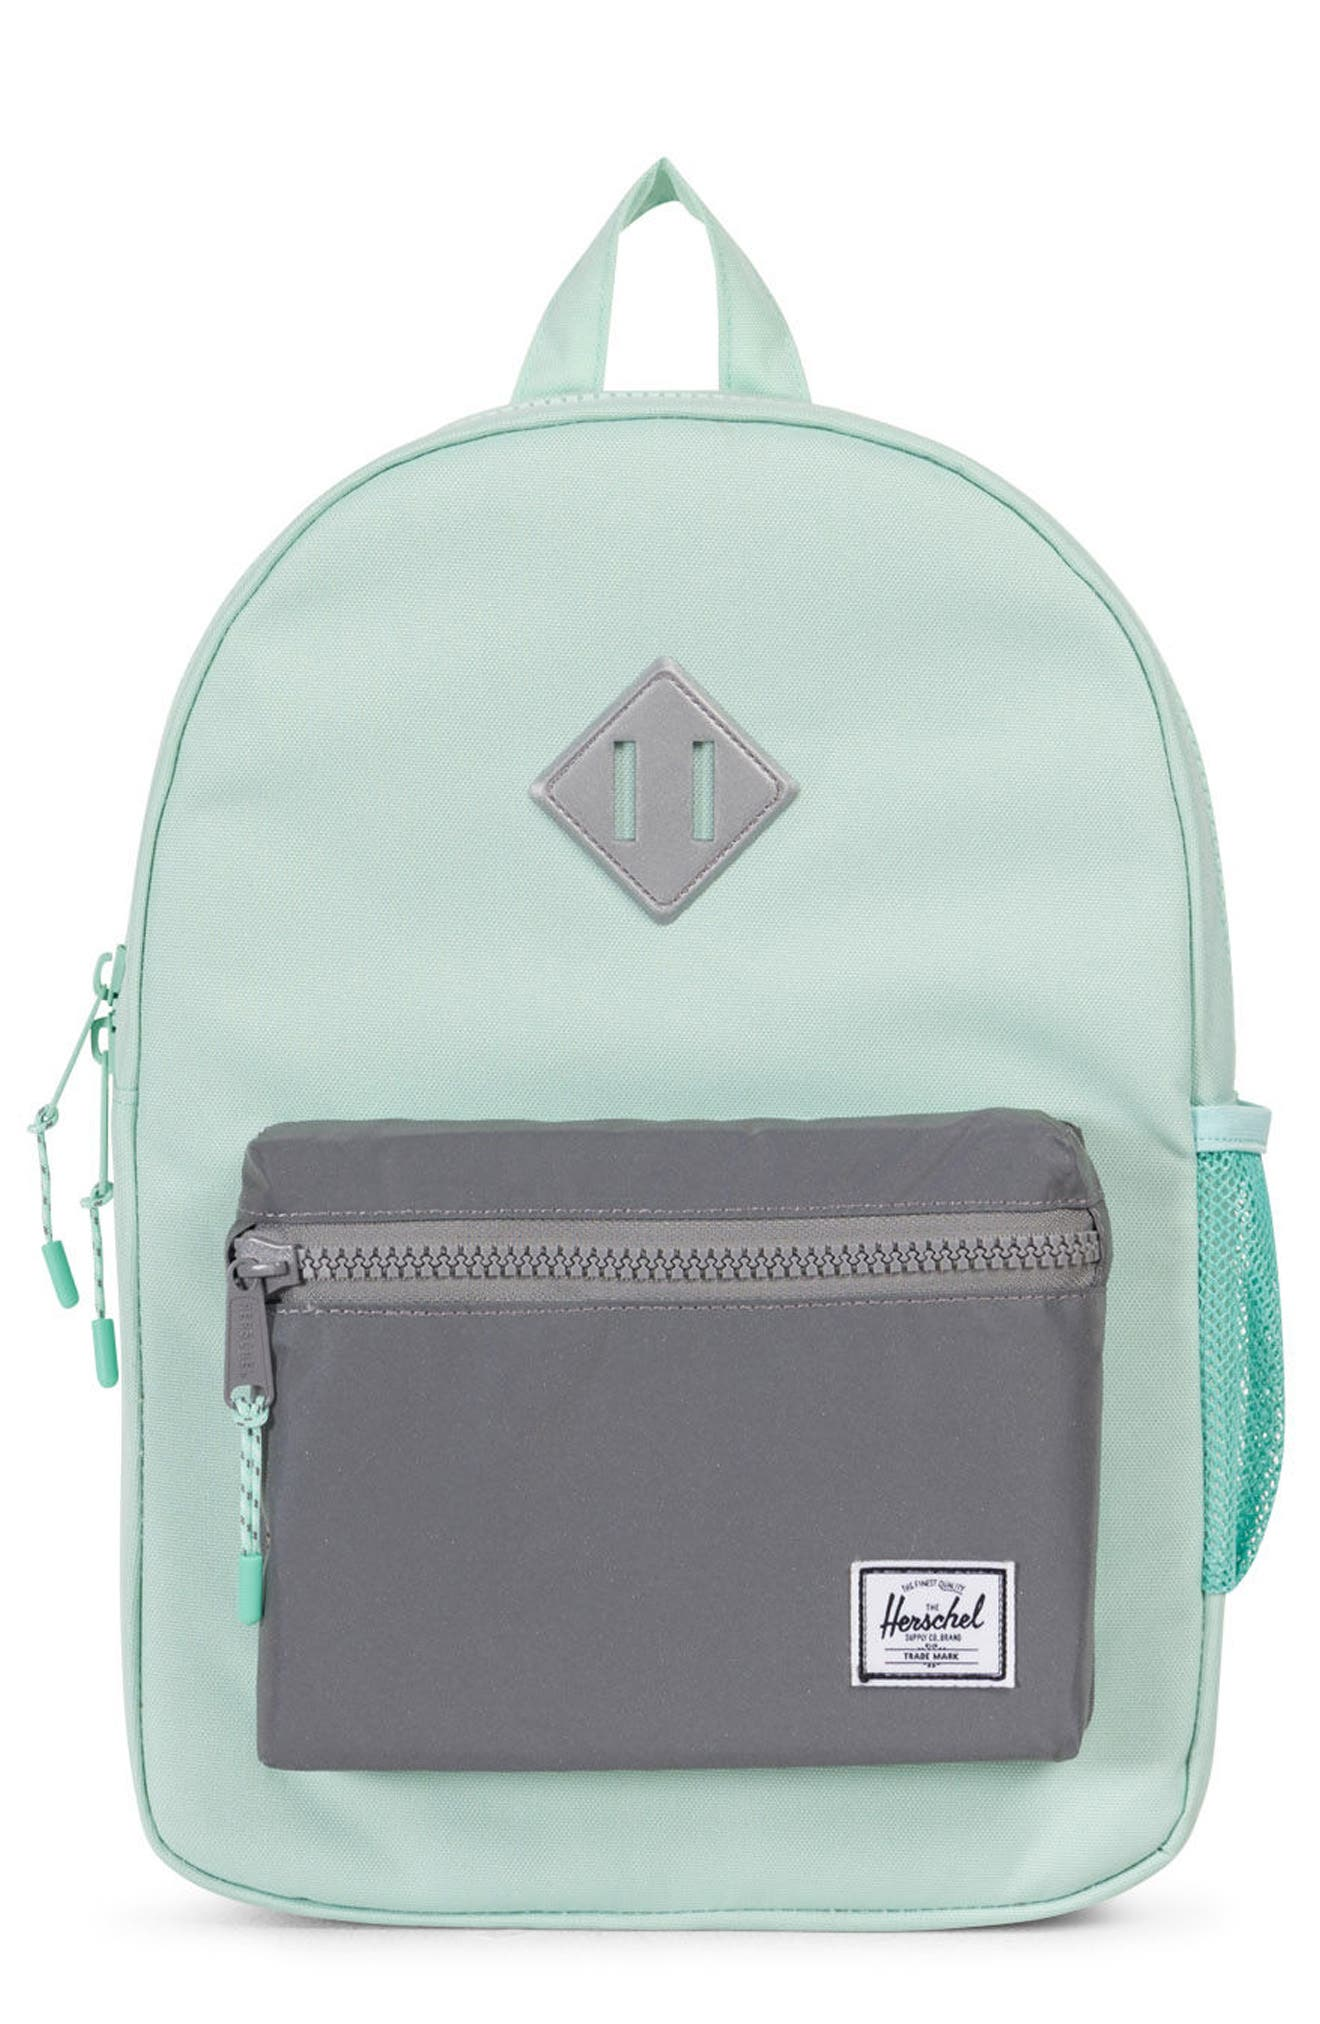 Heritage Backpack,                             Main thumbnail 1, color,                             Yucca/ Reflective Rubber